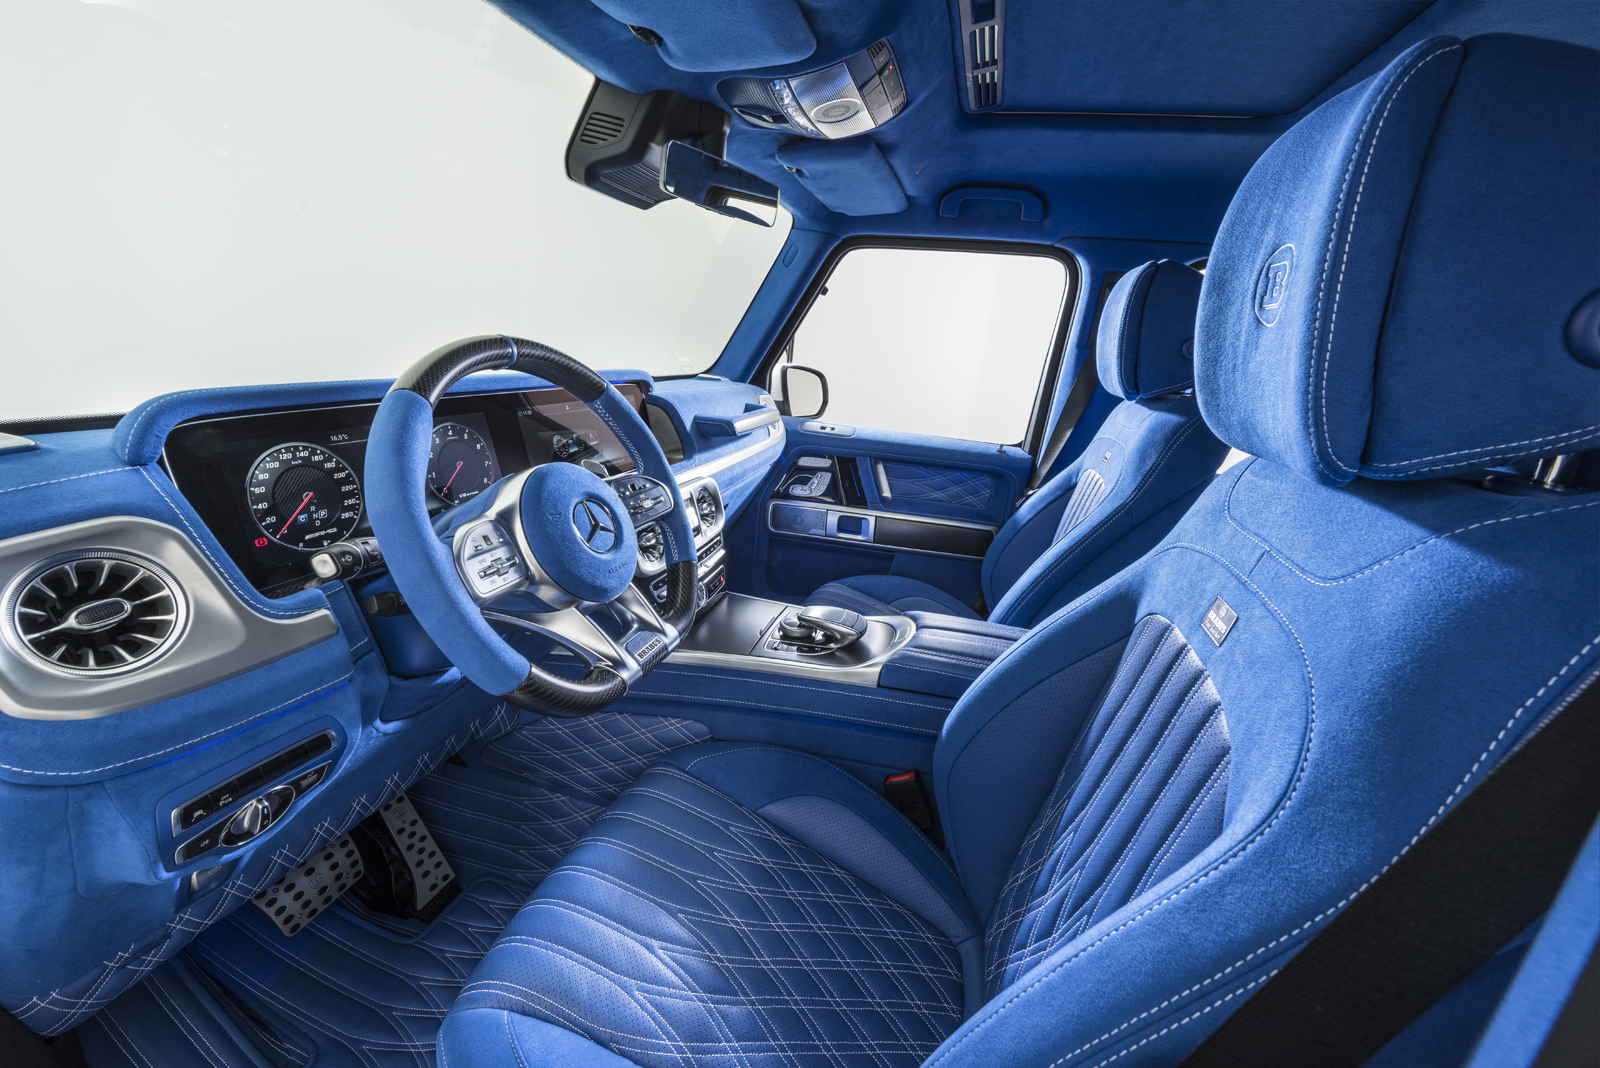 There Is Nothing More Blue Than This G63 Amg Interior